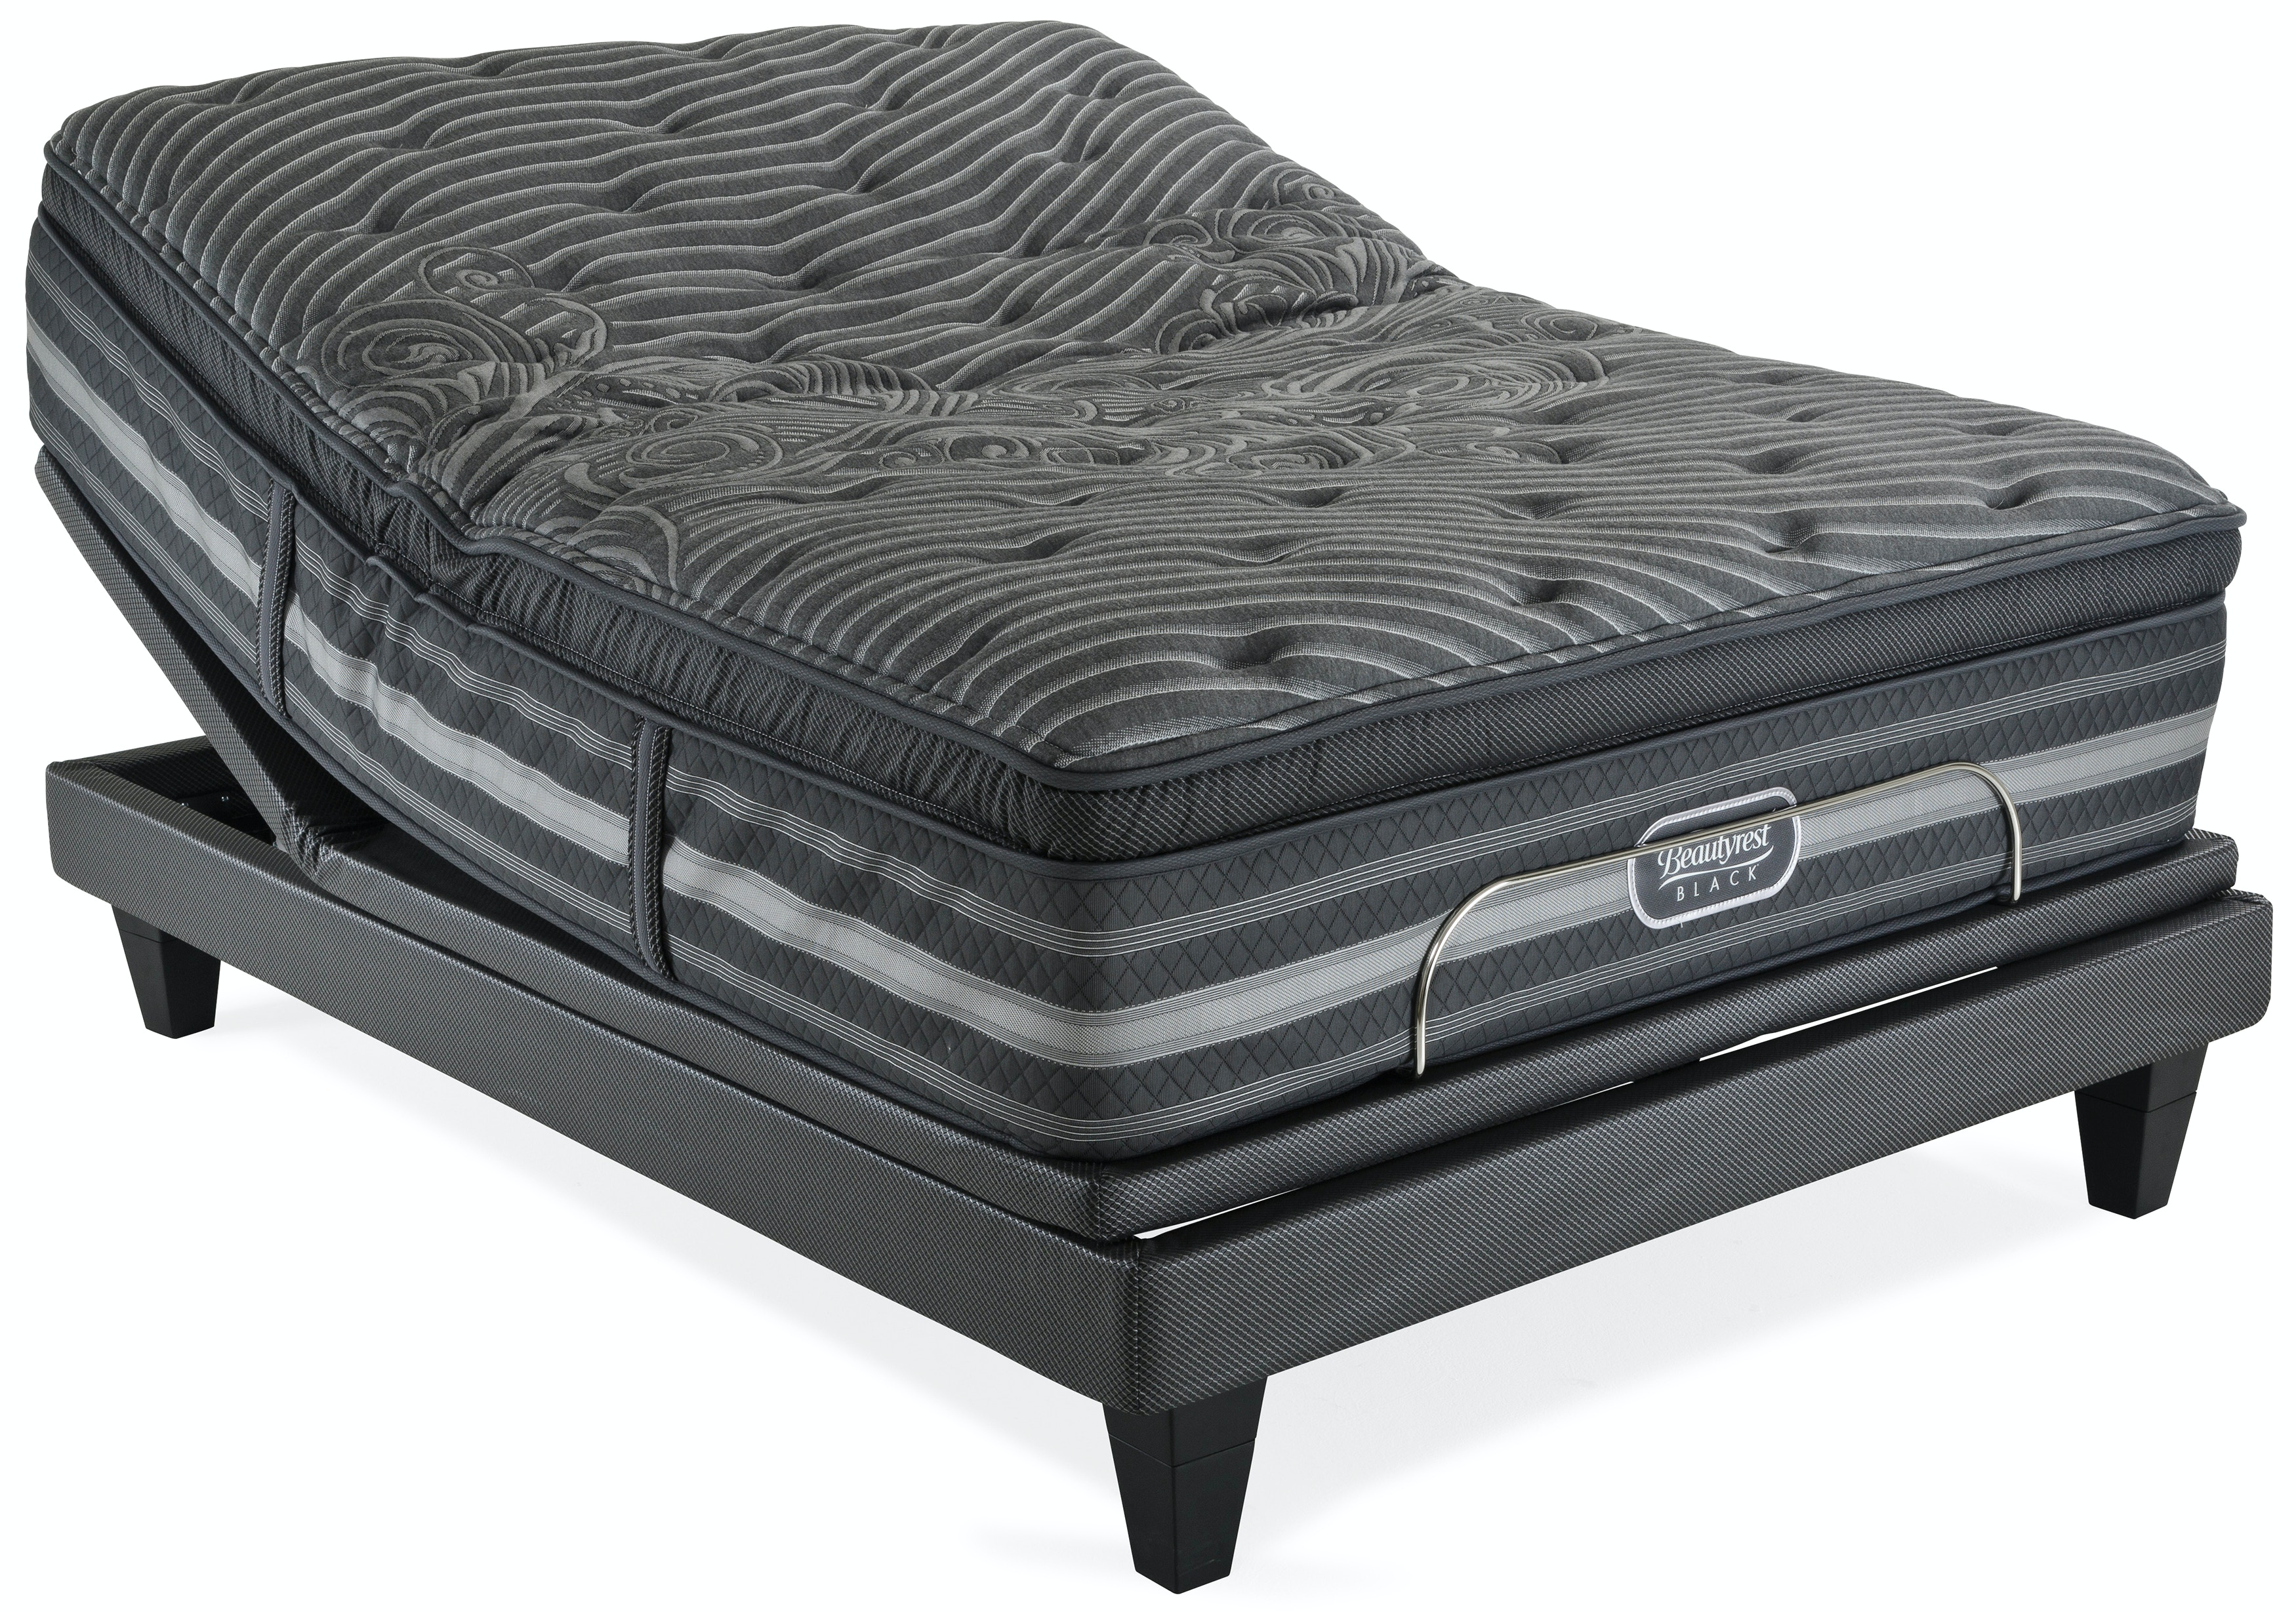 Beautyrest black Mattress Beautyrest Black Natasha Plush Pillow Top Mattress With Smartmotion 30 Adjustable Base Queen Kt Star Furniture Mattresses Beautyrest Black Natasha Plush Pillow Top Mattress With